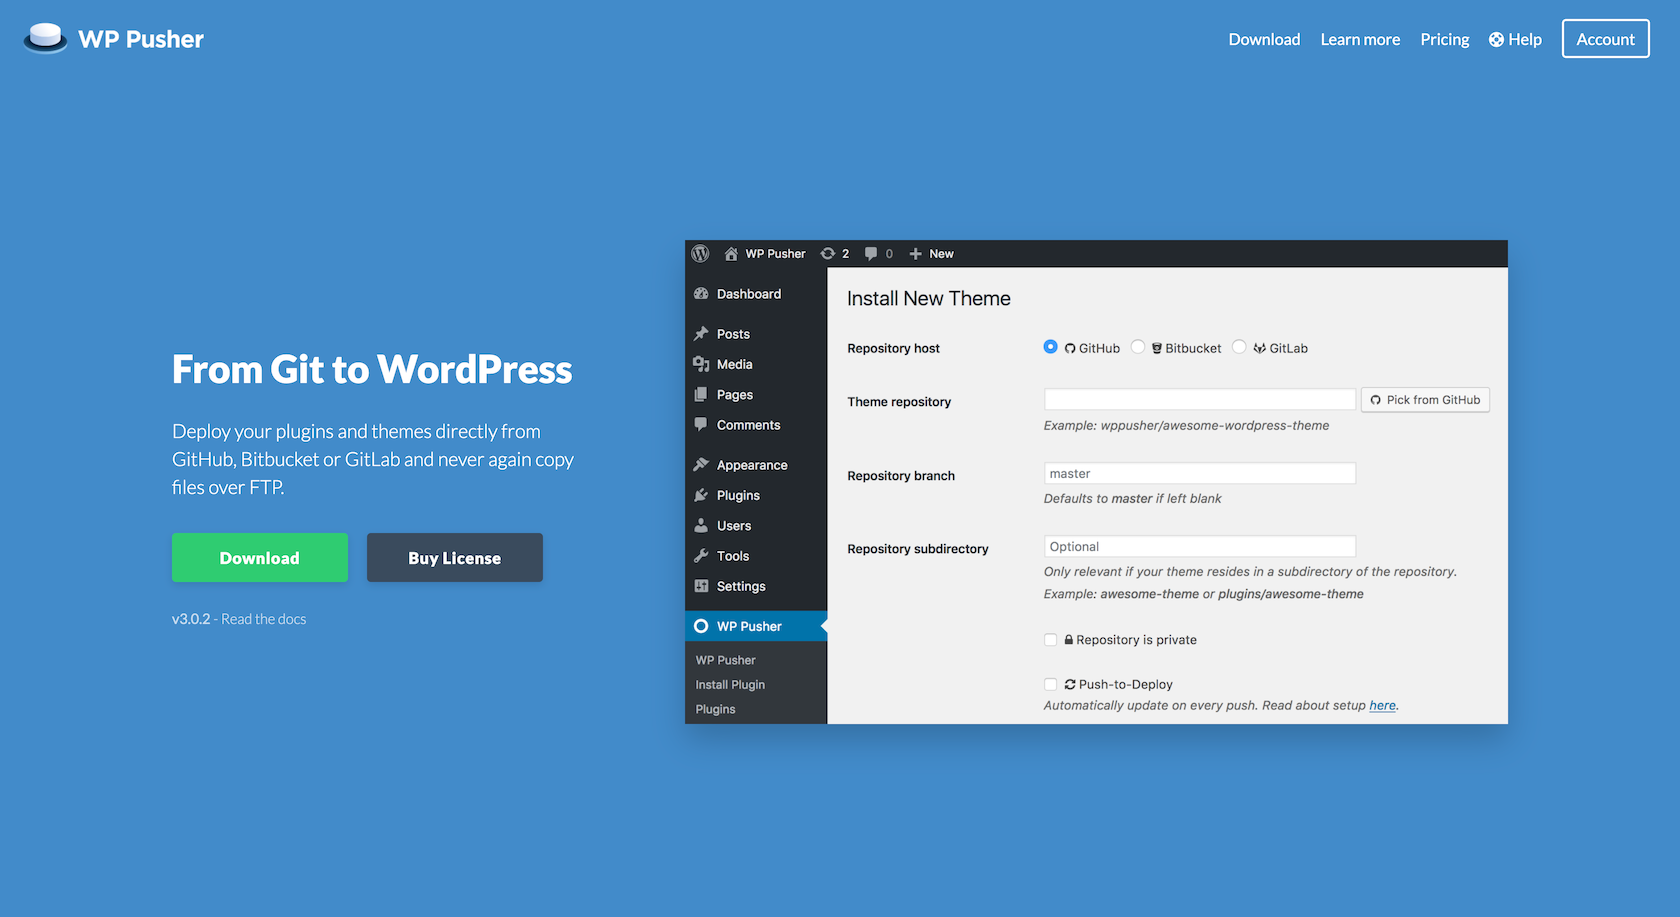 FireShot Capture 311 - WordPress Git deployments with WP Pusher - wppusher.com.png